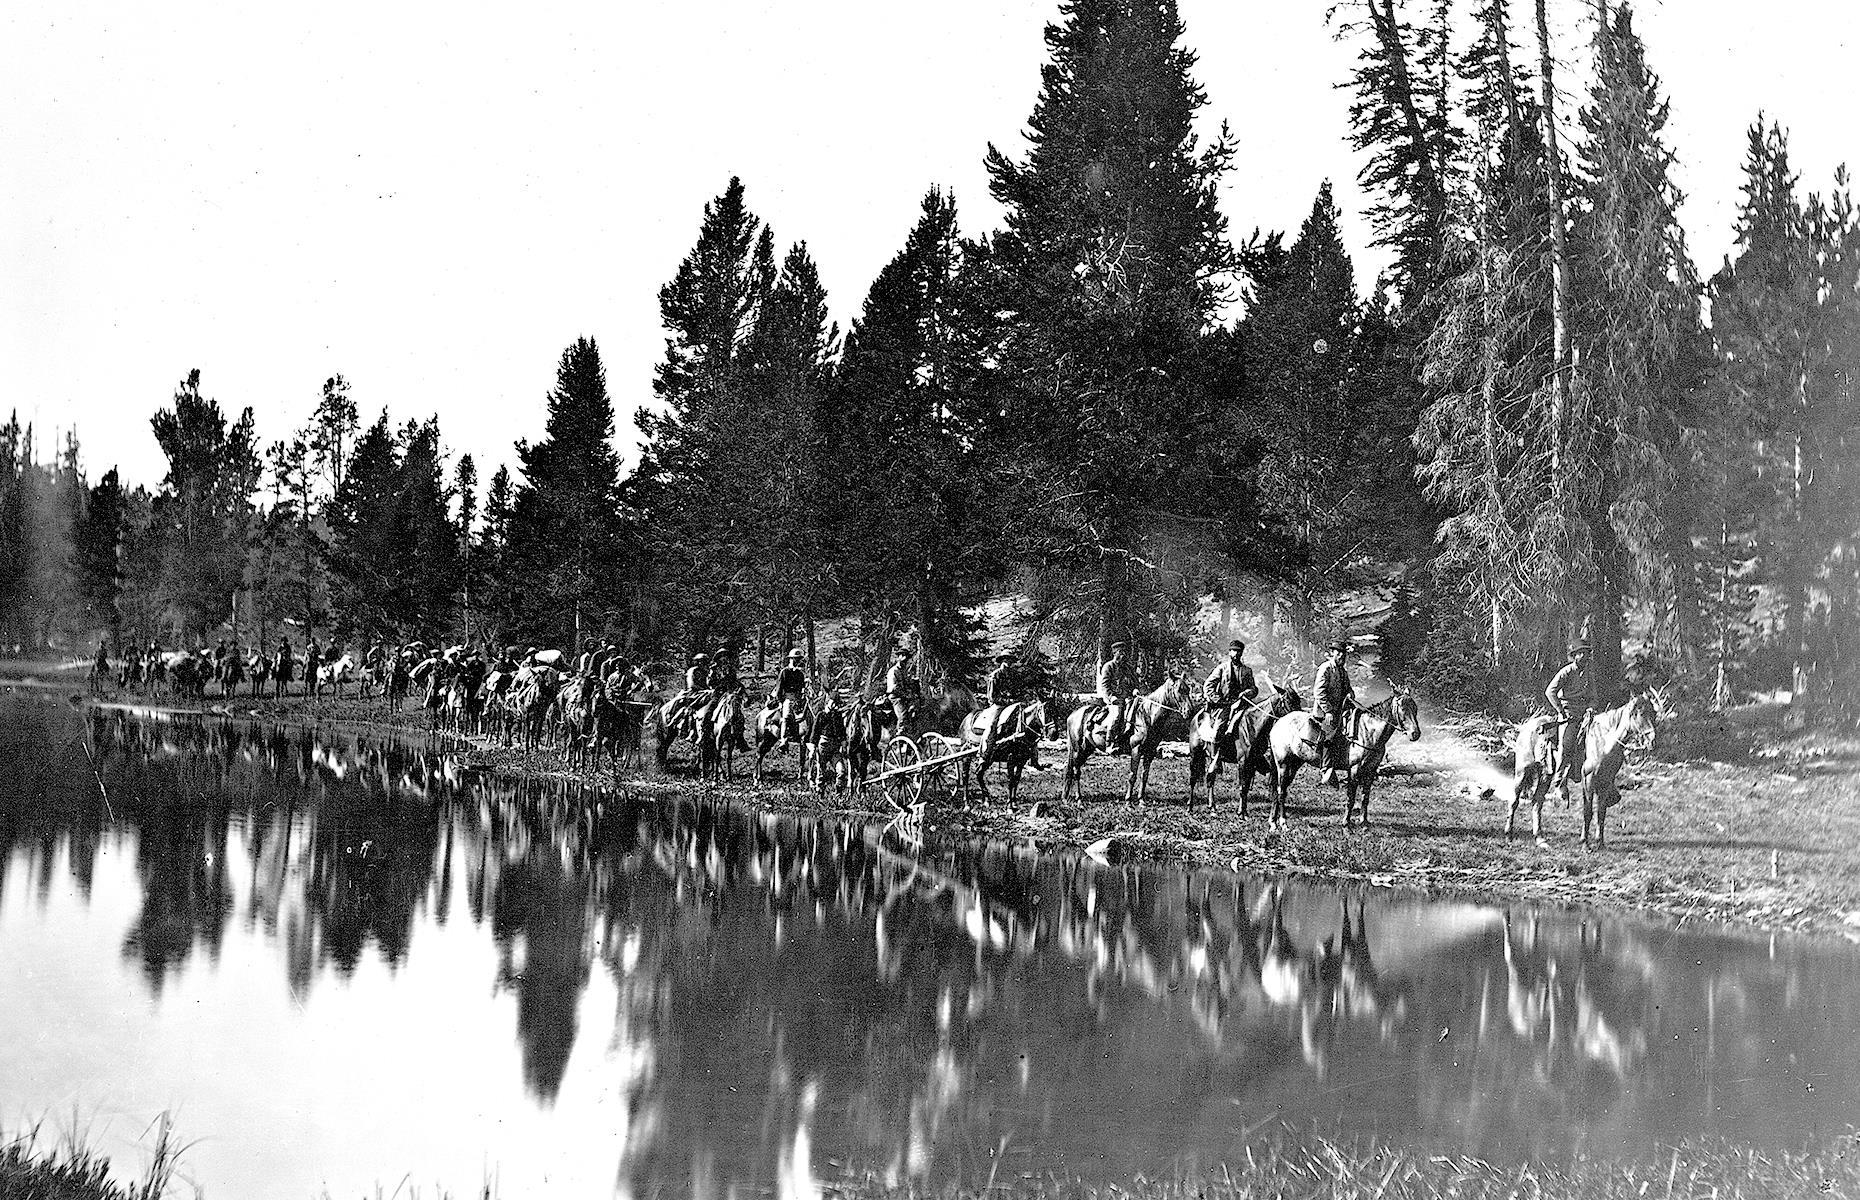 Slide 4 of 51: The first National Park in the US, Yellowstone was established in 1872 and covers a large region in northwestern Wyoming as well as Montana and Idaho. This photograph was captured prior to its official founding and shows men carrying out the Hayden Geological Survey of 1871. Tourists began to visit by rail or horse and carriage from the late 1800s, although it wasn't until cars were allowed in 1915 that tourism really spiked. For thousands of years, Yellowstone has been home to indigenous people and today 26 tribes have ties to the area.